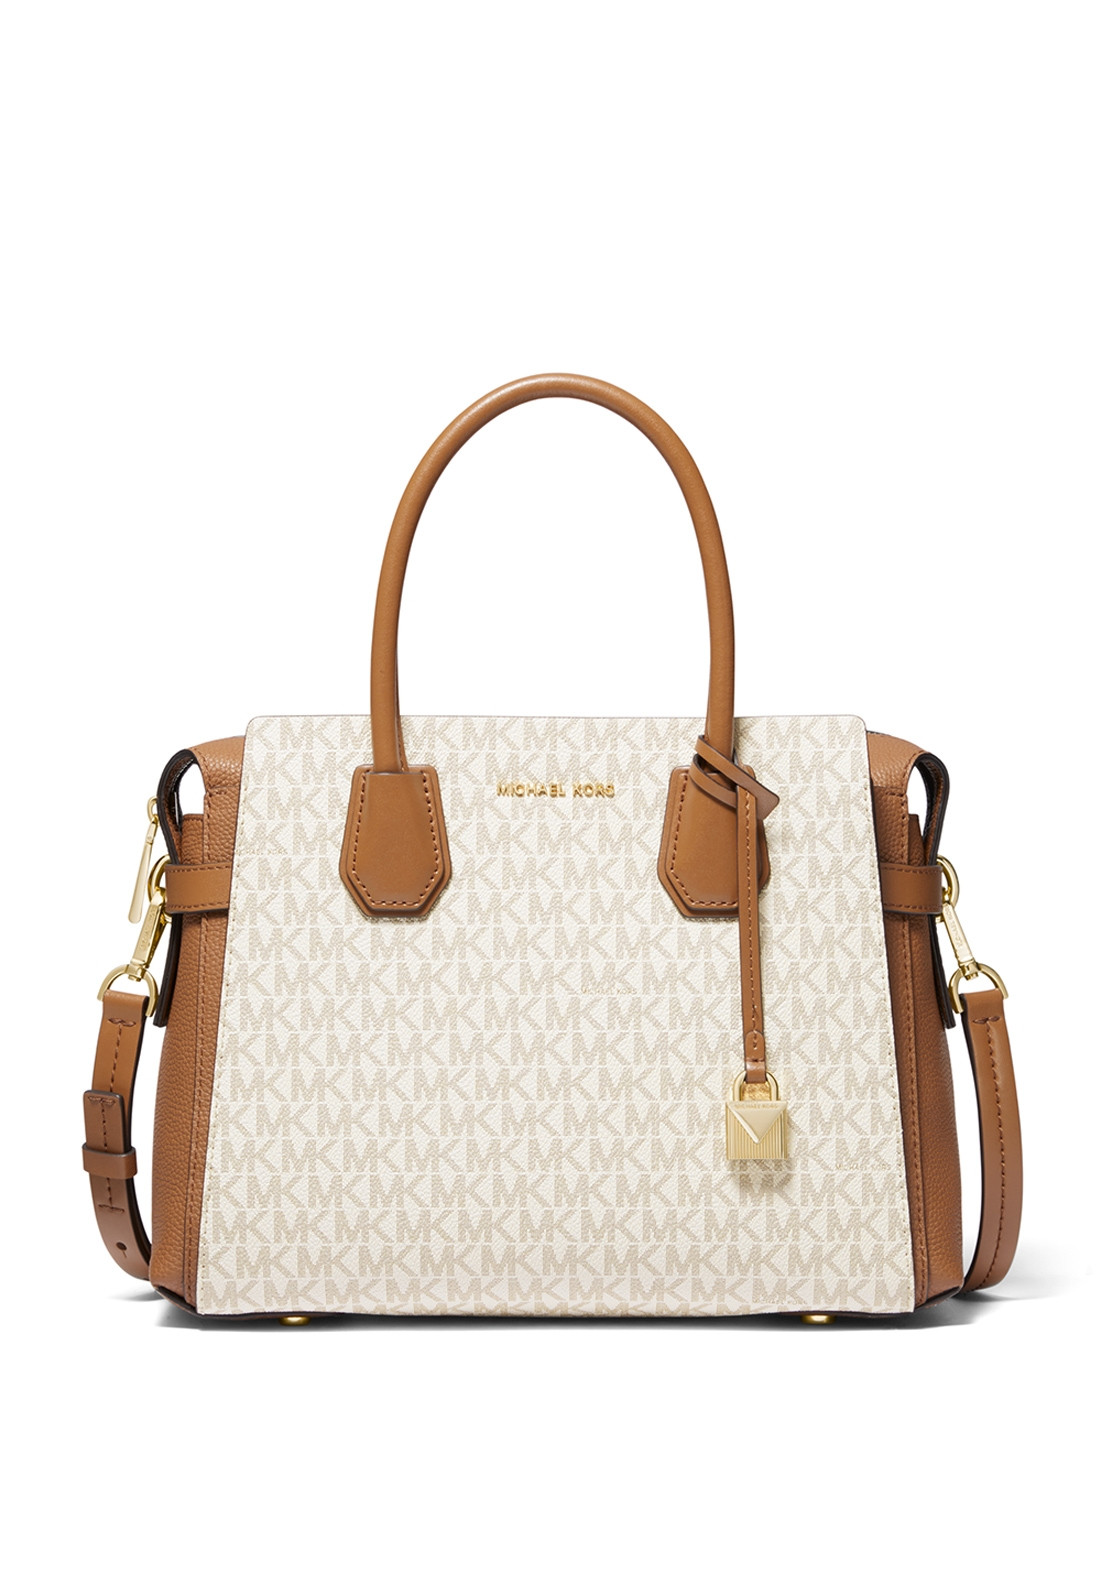 Michael Kors Leather Belted Logo Grab Bag Tan White